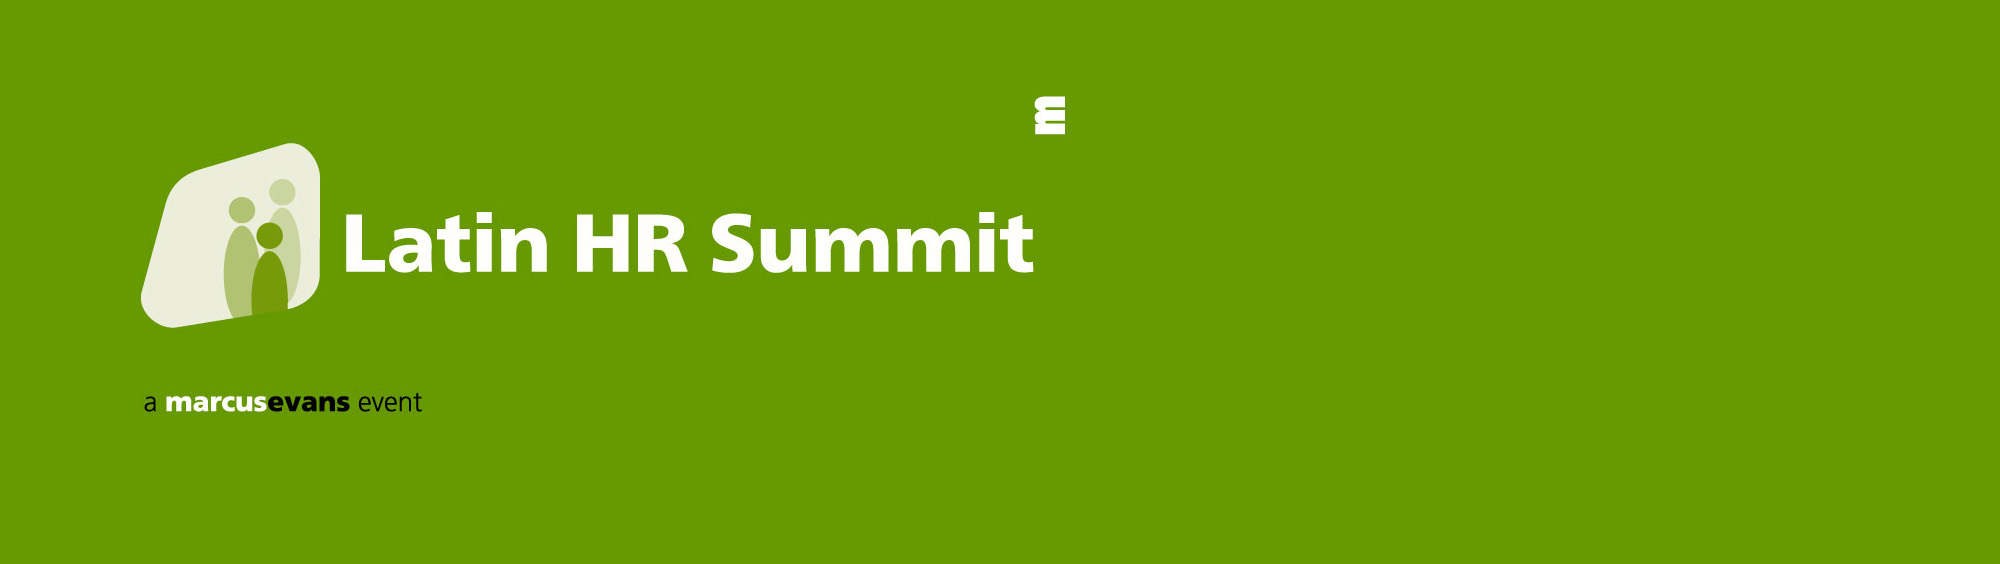 Latin HR Summit 2017